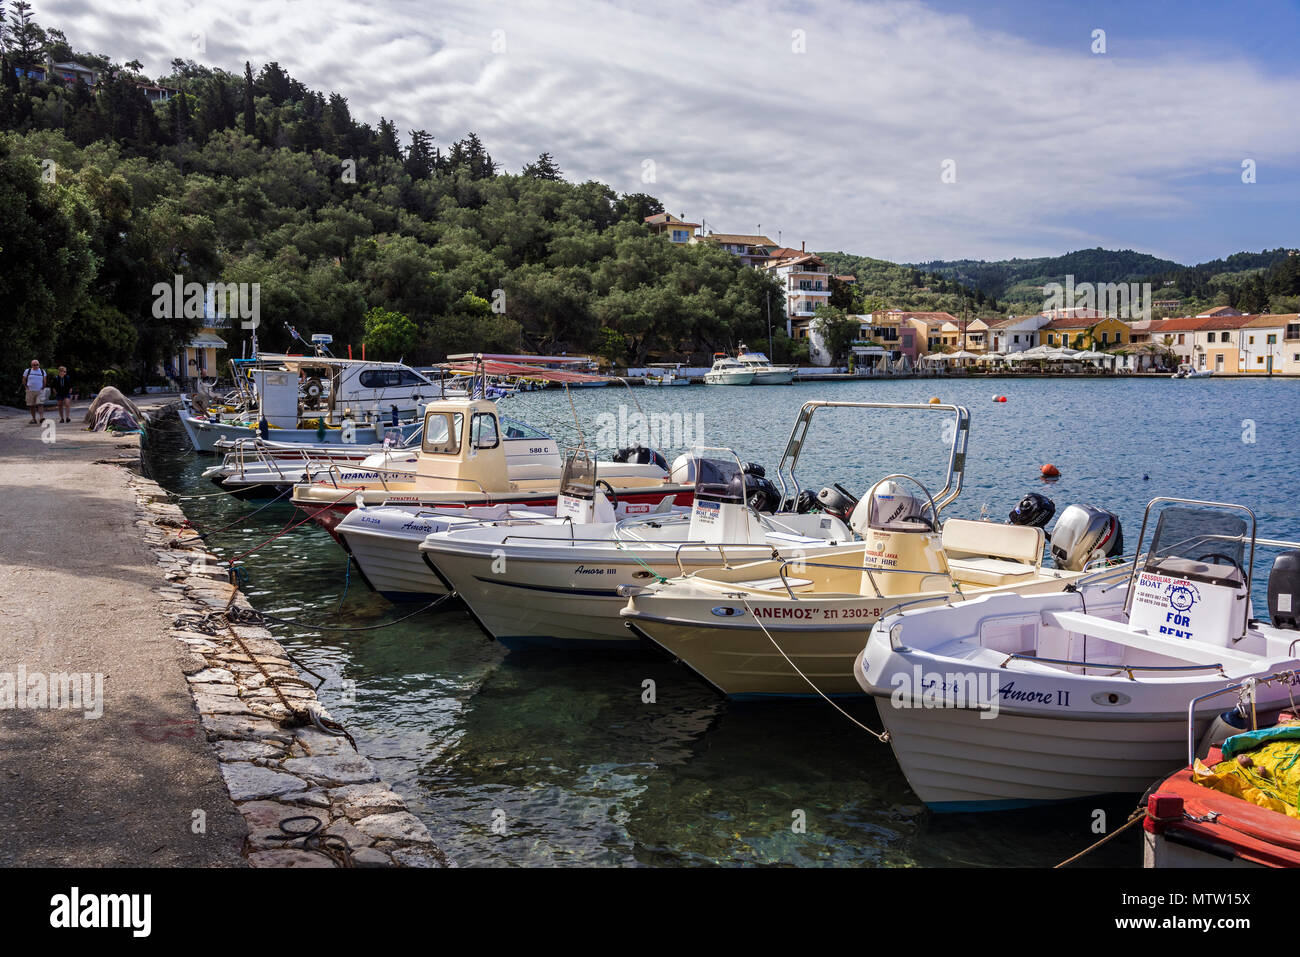 Boat Hire at Lakka Harbour, Paxos. - Stock Image